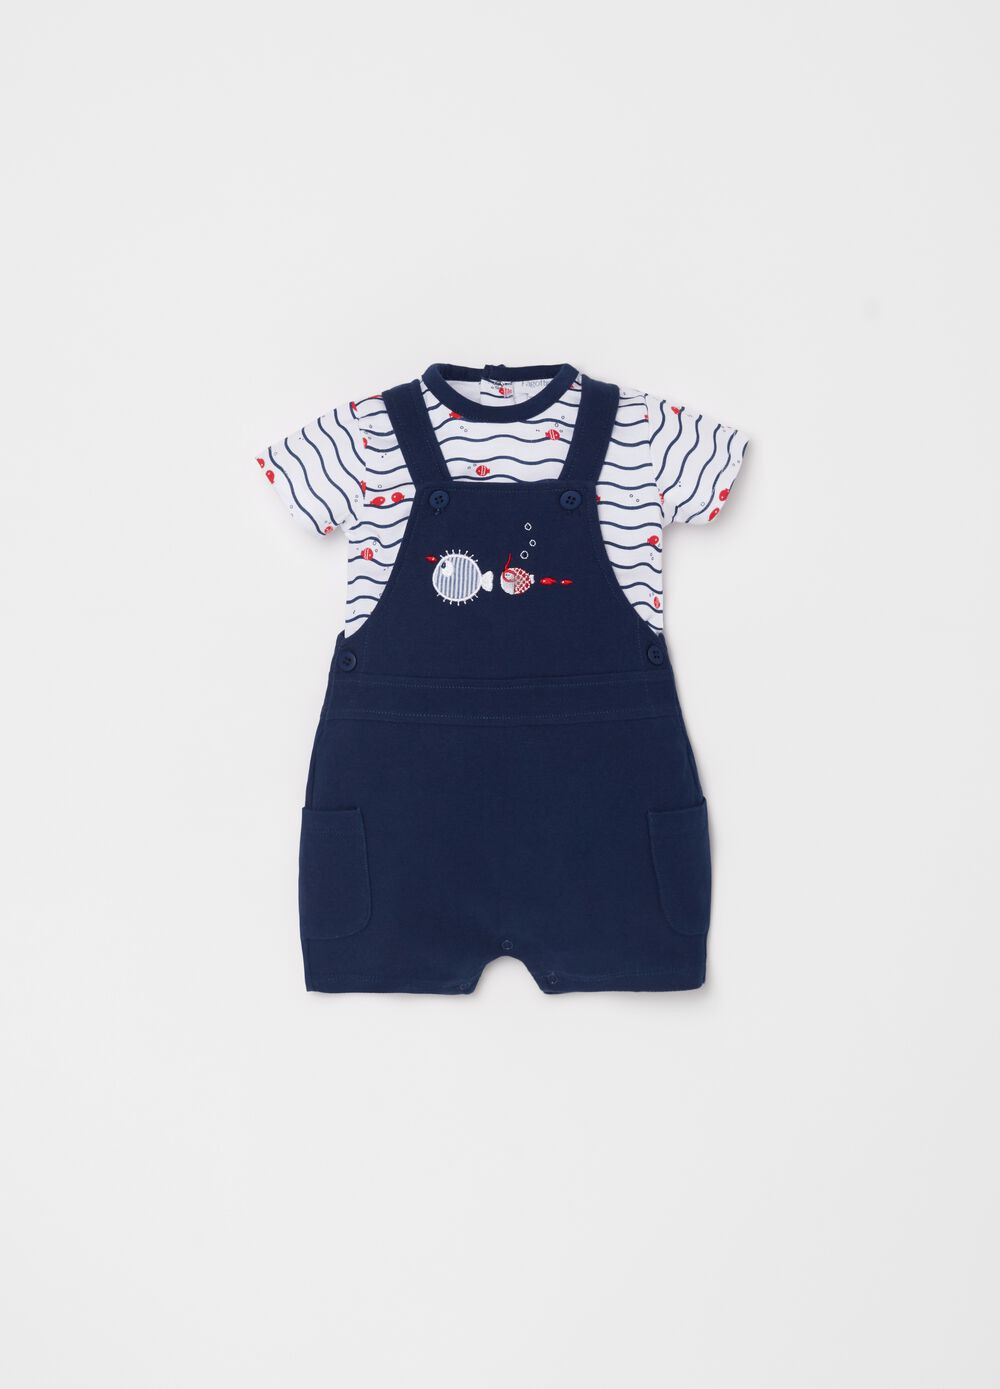 T-shirt and dungarees set with fish embroidery